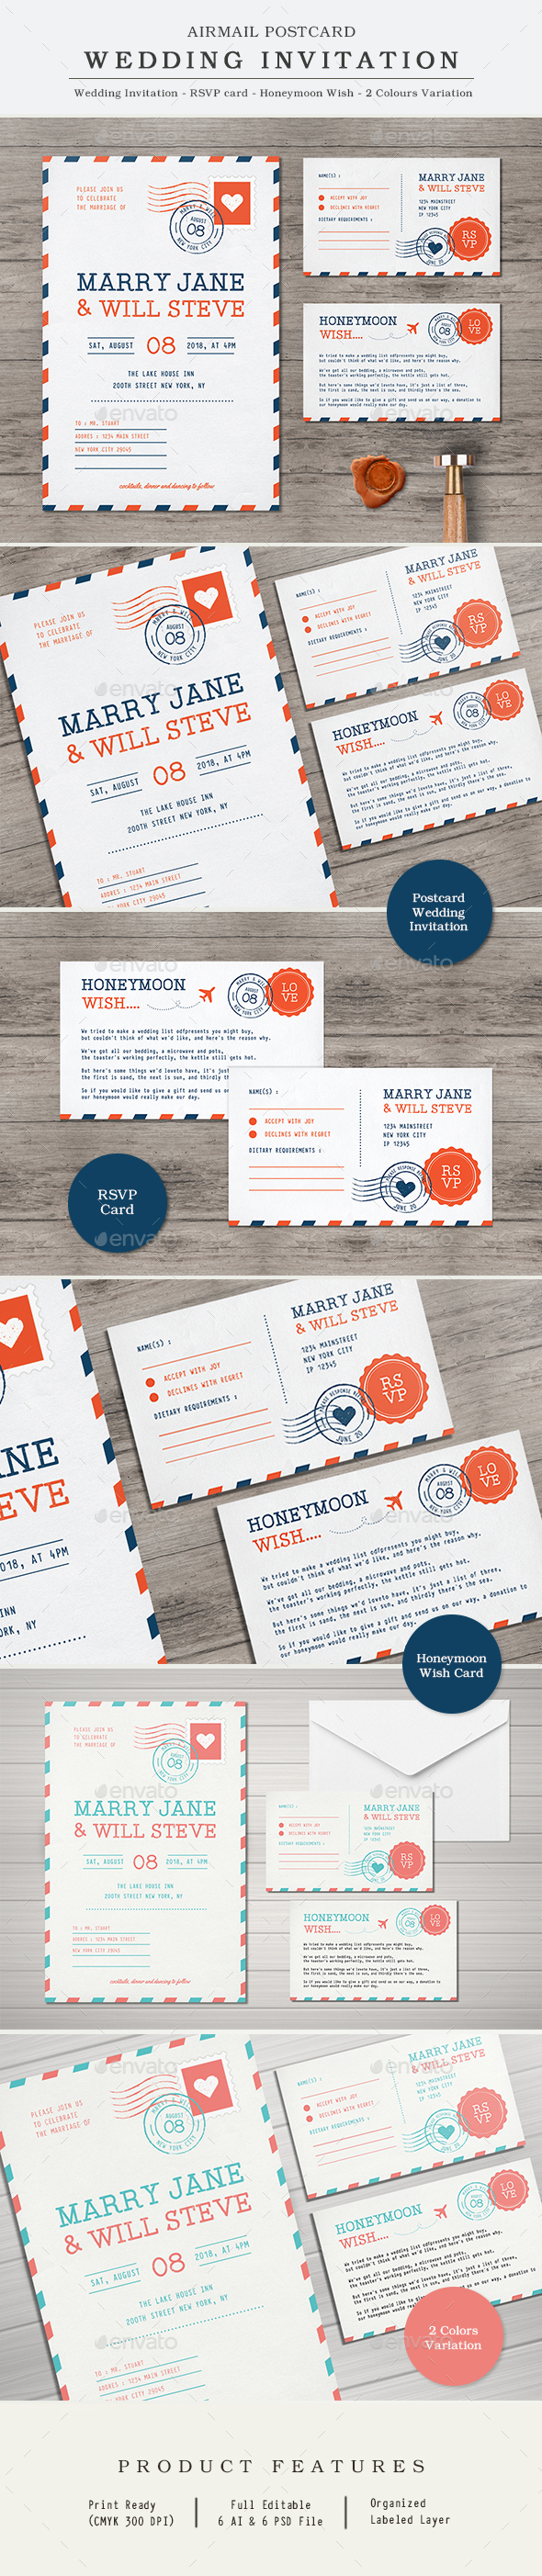 Airmail Wedding Invitation - Weddings Cards & Invites